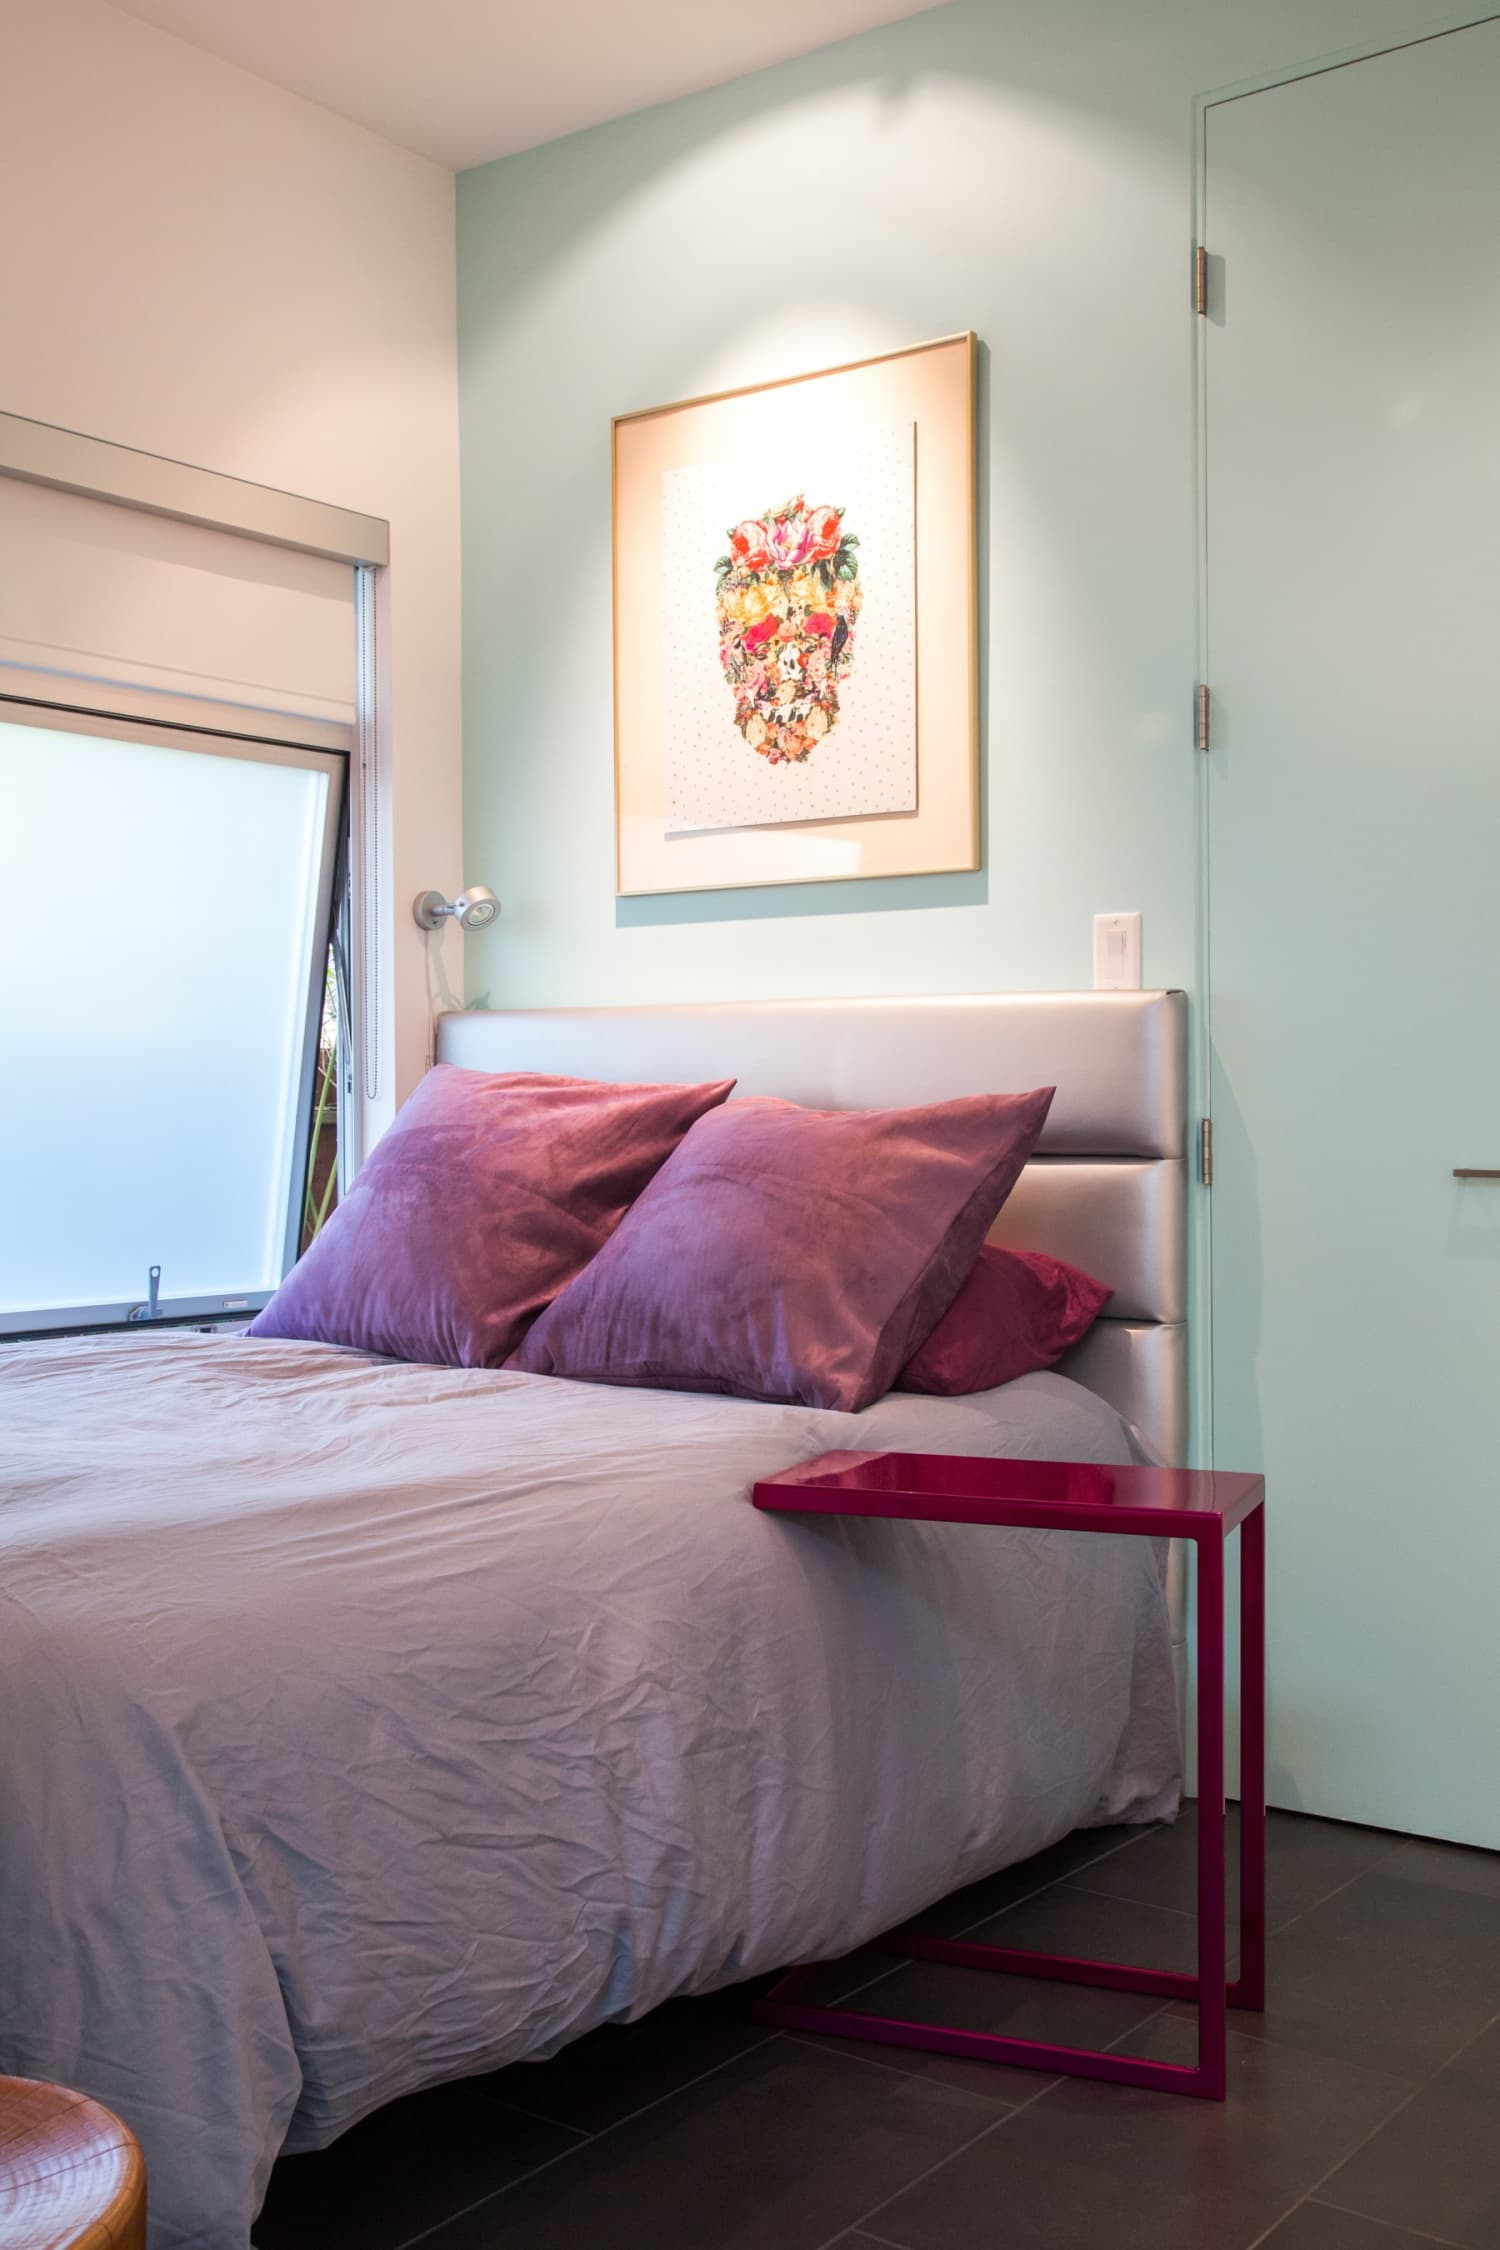 5 Small Changes to Make a Thimble-Sized Space Feel Larger